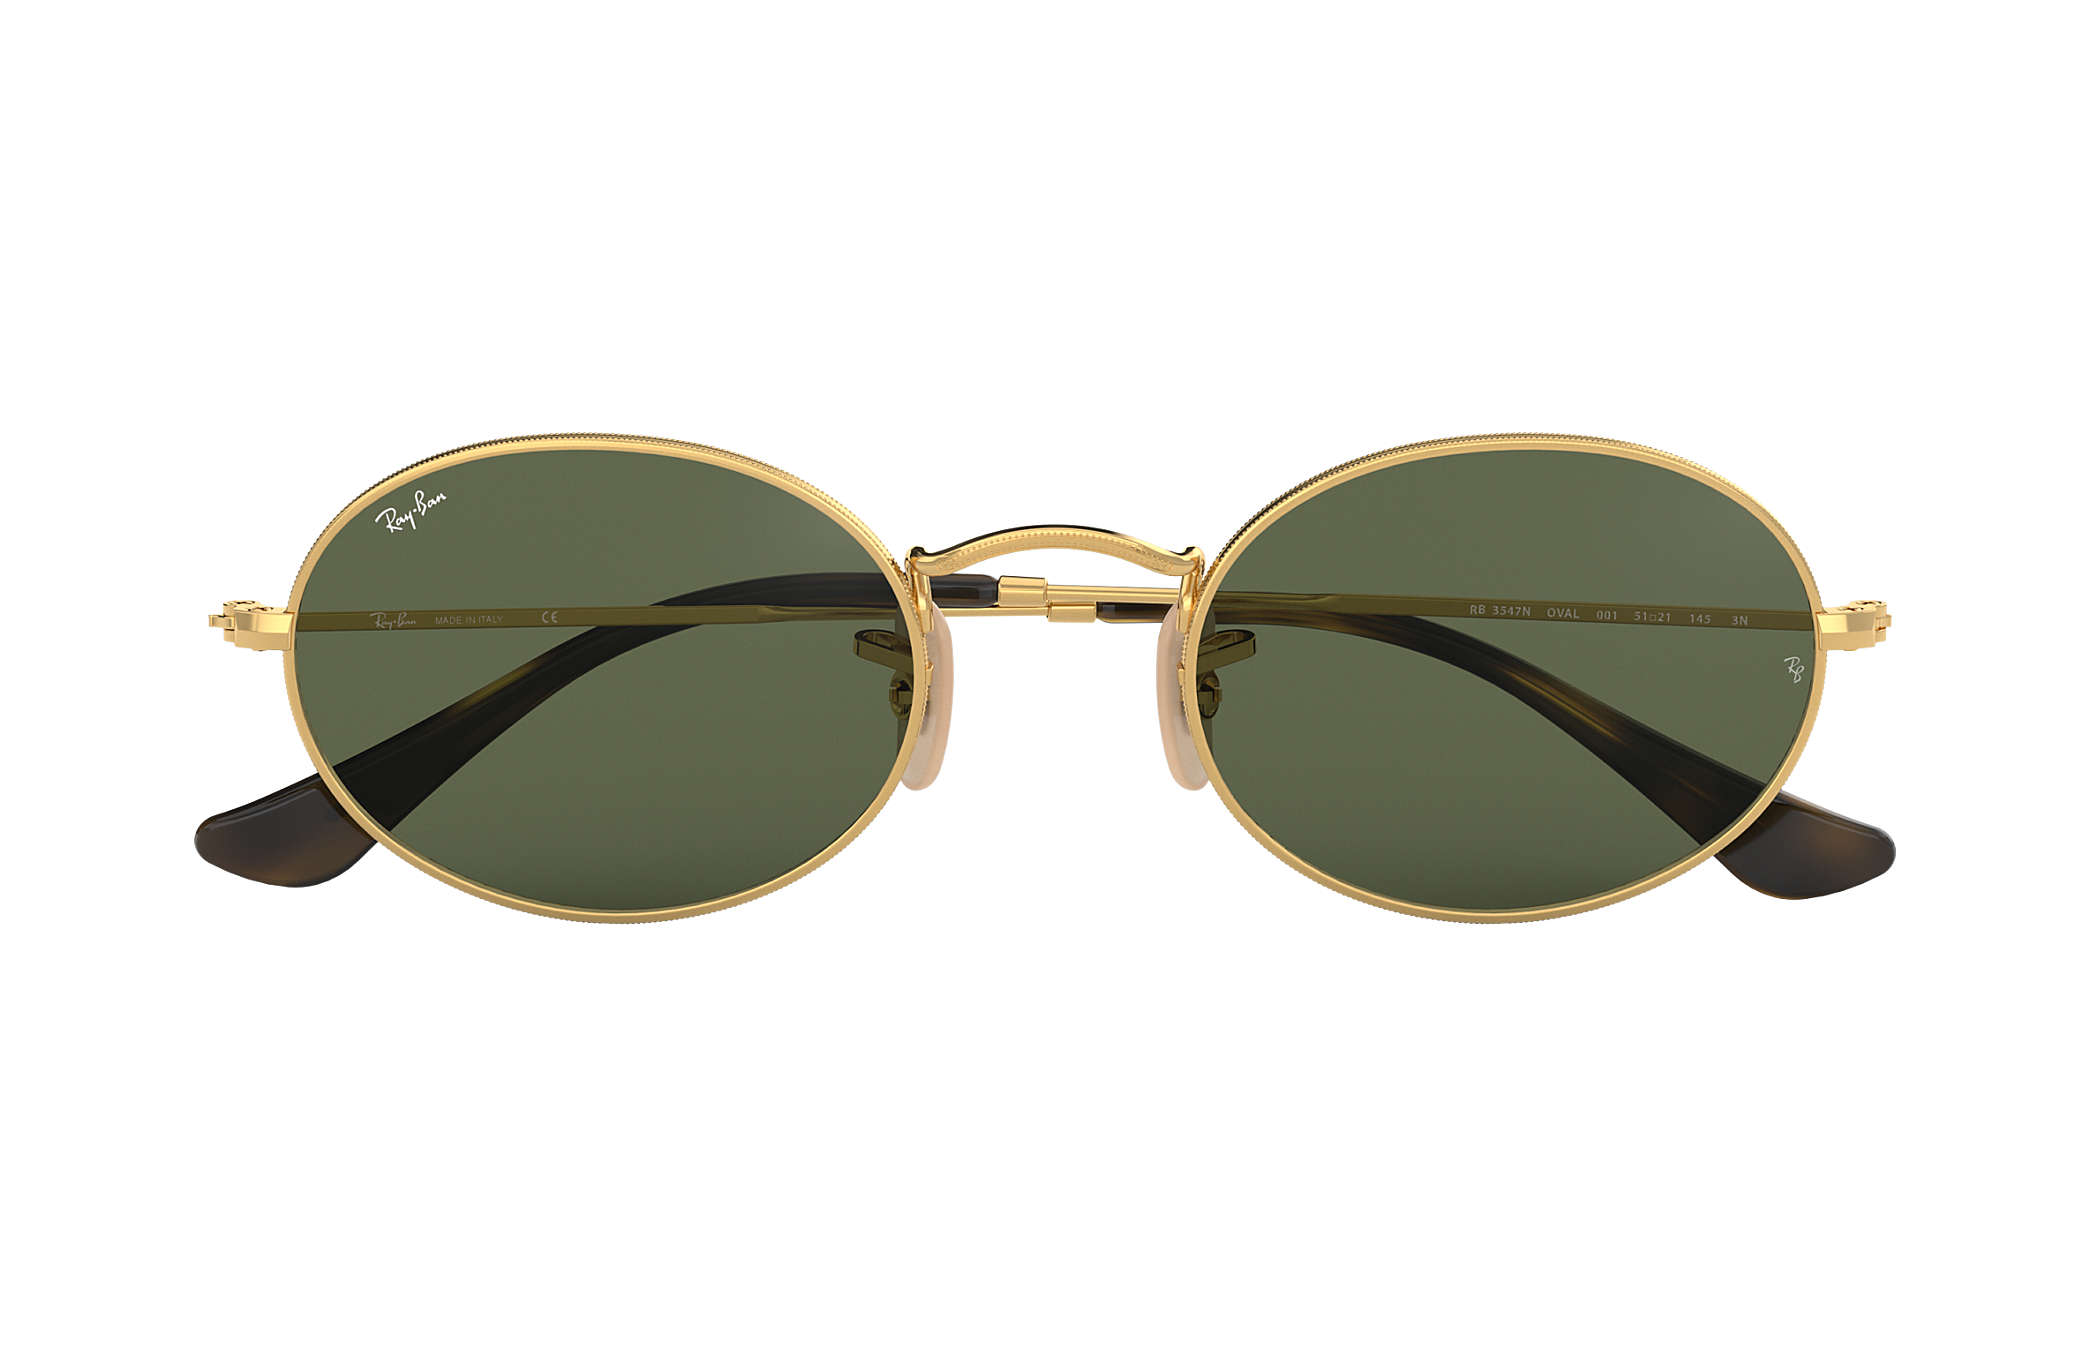 ca5b1c03c Ray-Ban Oval Flat Lenses RB3547N Gold - Metal - Green Lenses ...